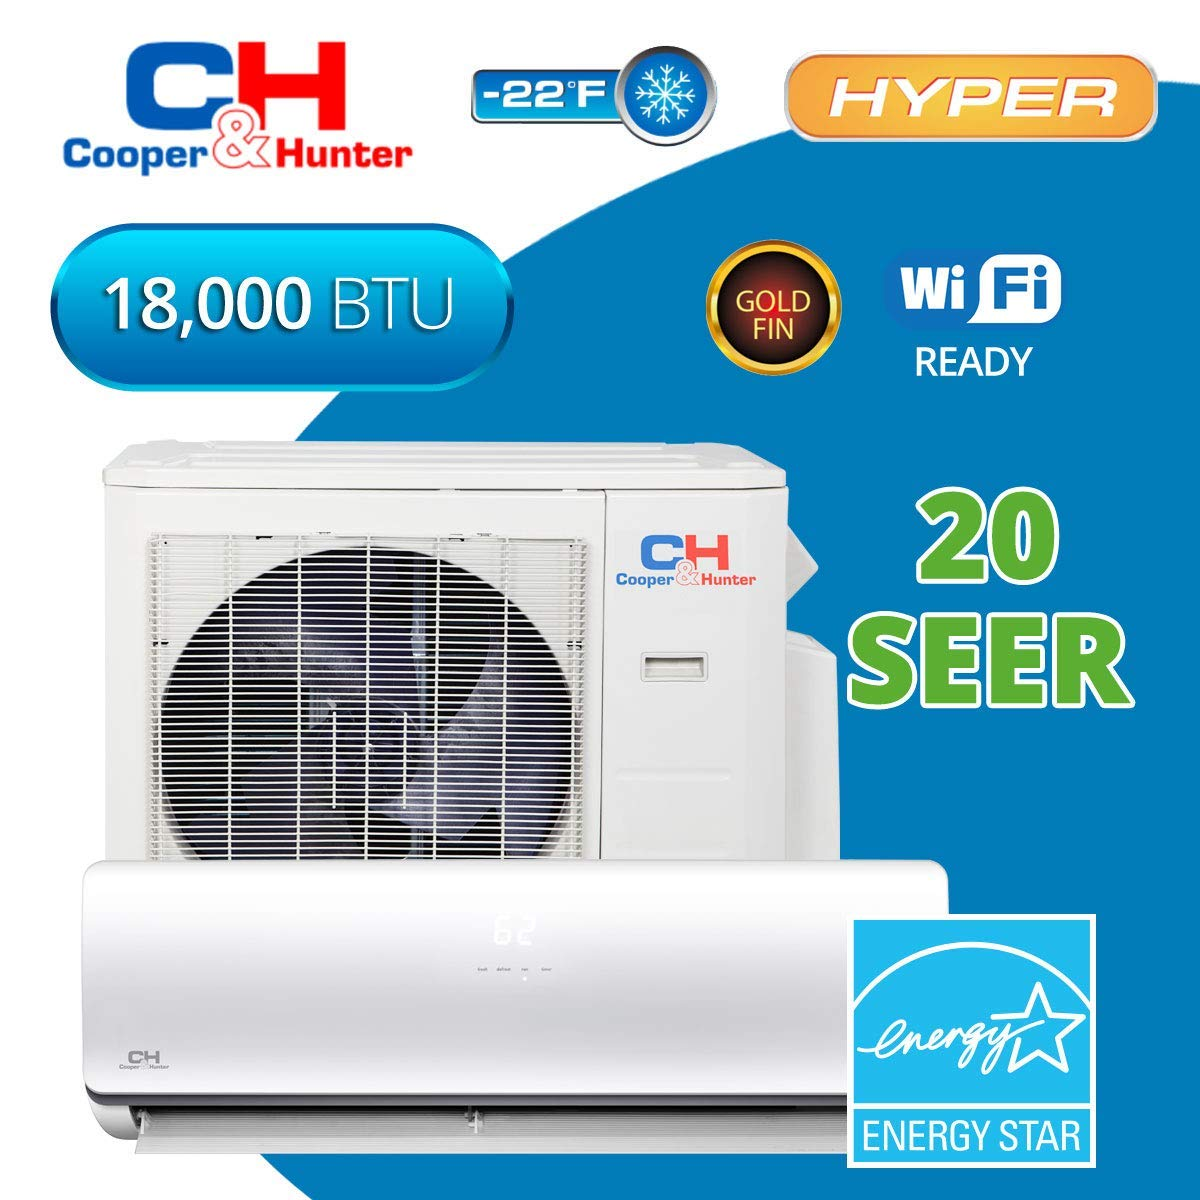 COOPER AND HUNTER Dakota Hyper Heat 18,000 BTU 20 SEER Ductless Mini-Split Air Conditioners Heat Pump